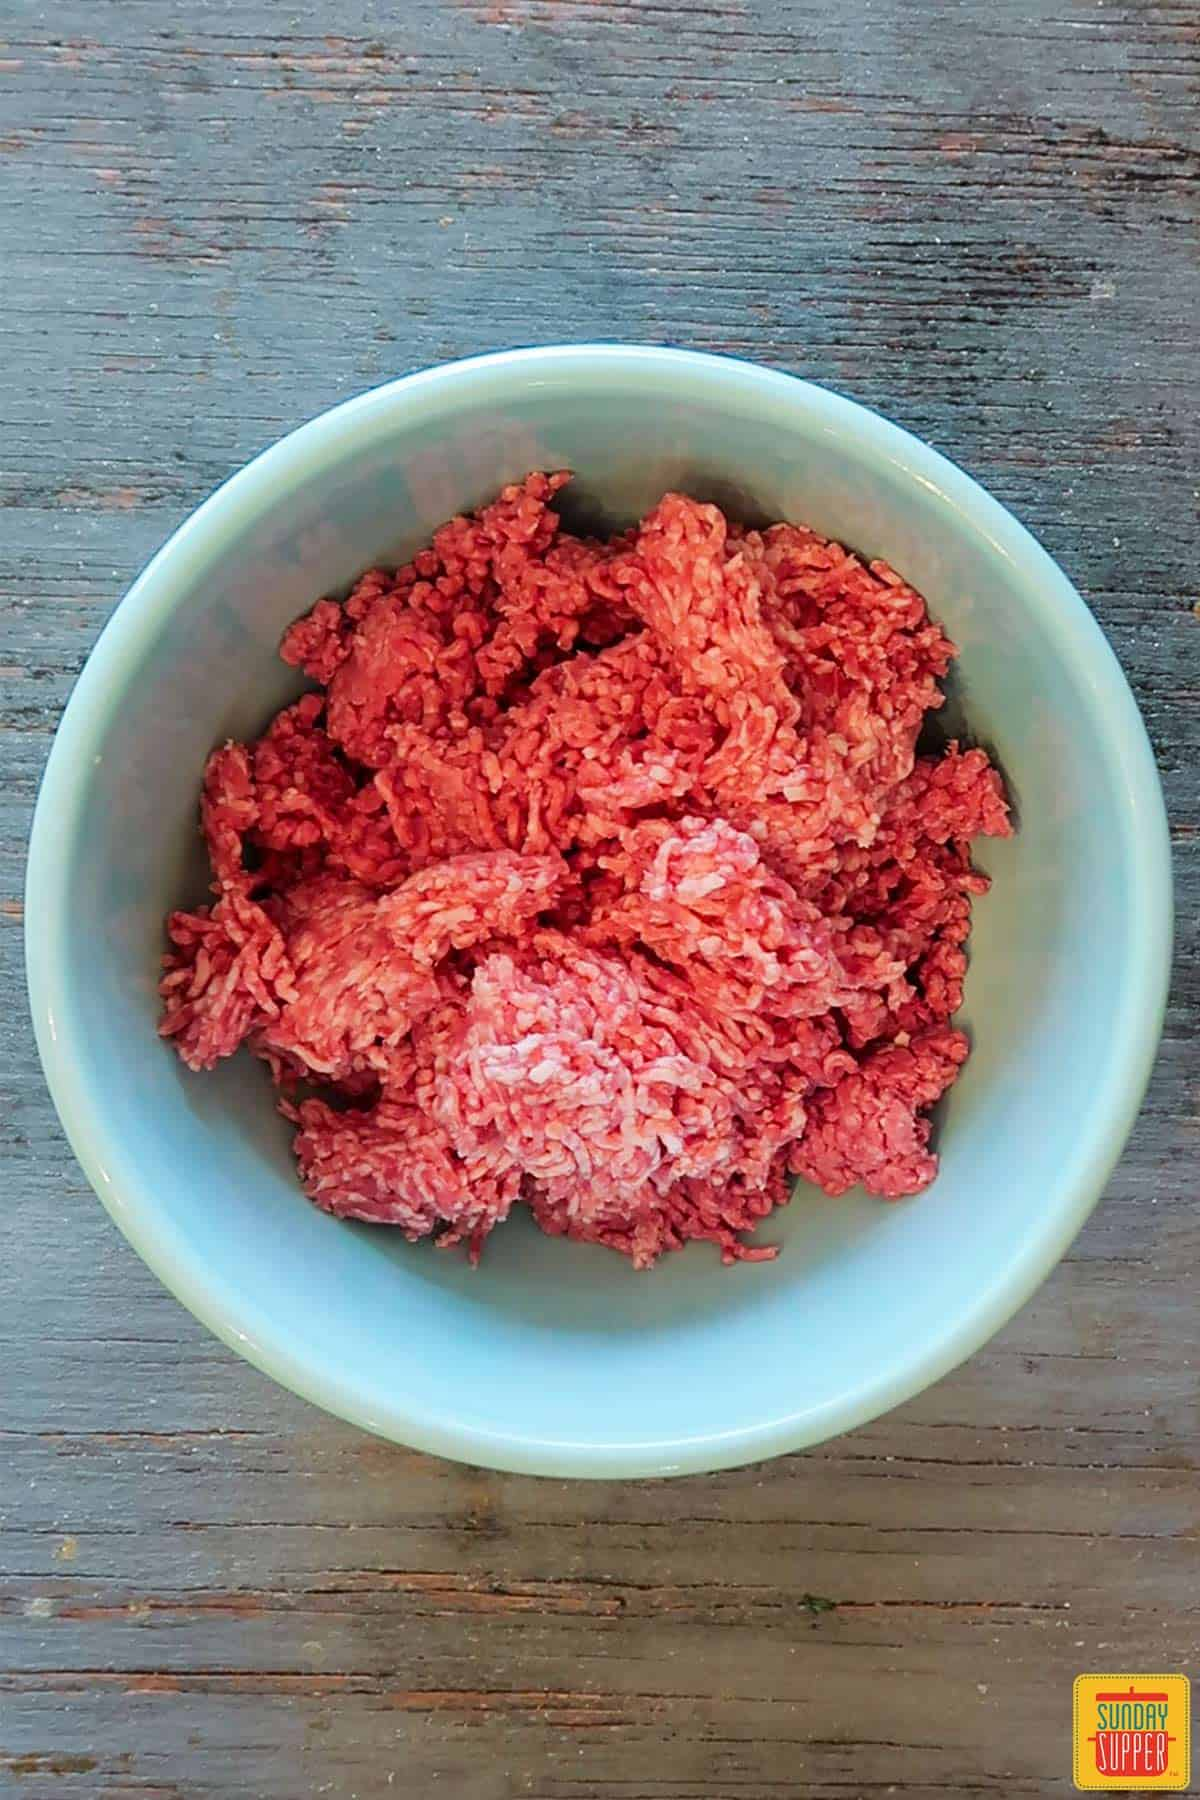 Ground beef and pork in a bowl